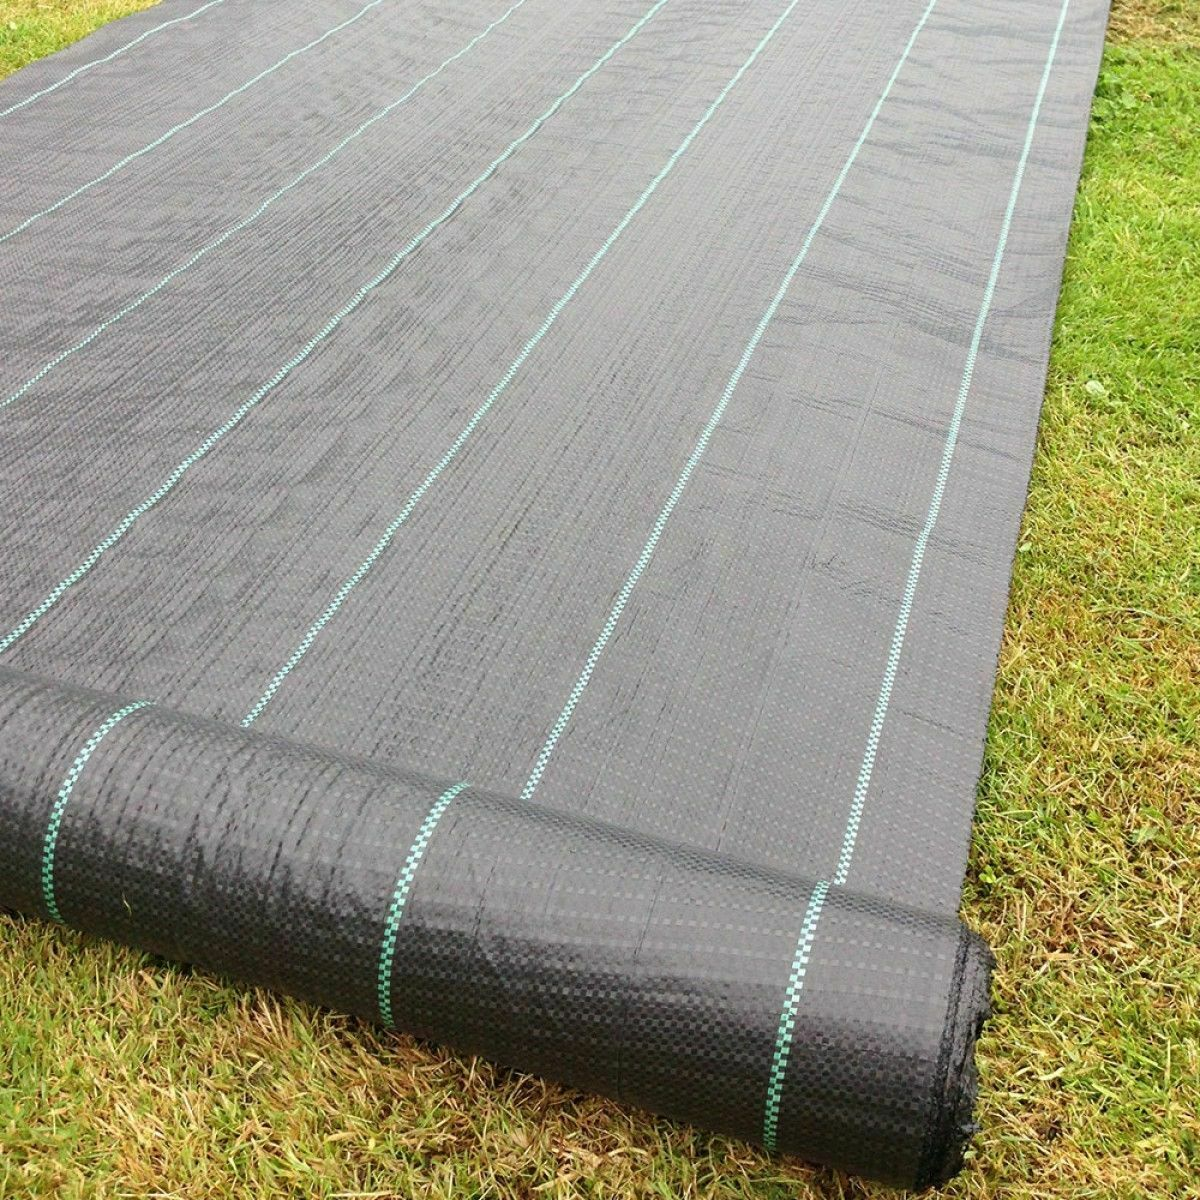 20 PEGS YUZET 2m x 25m 100g Weed Control Ground Cover Driveway Membrane Fabric